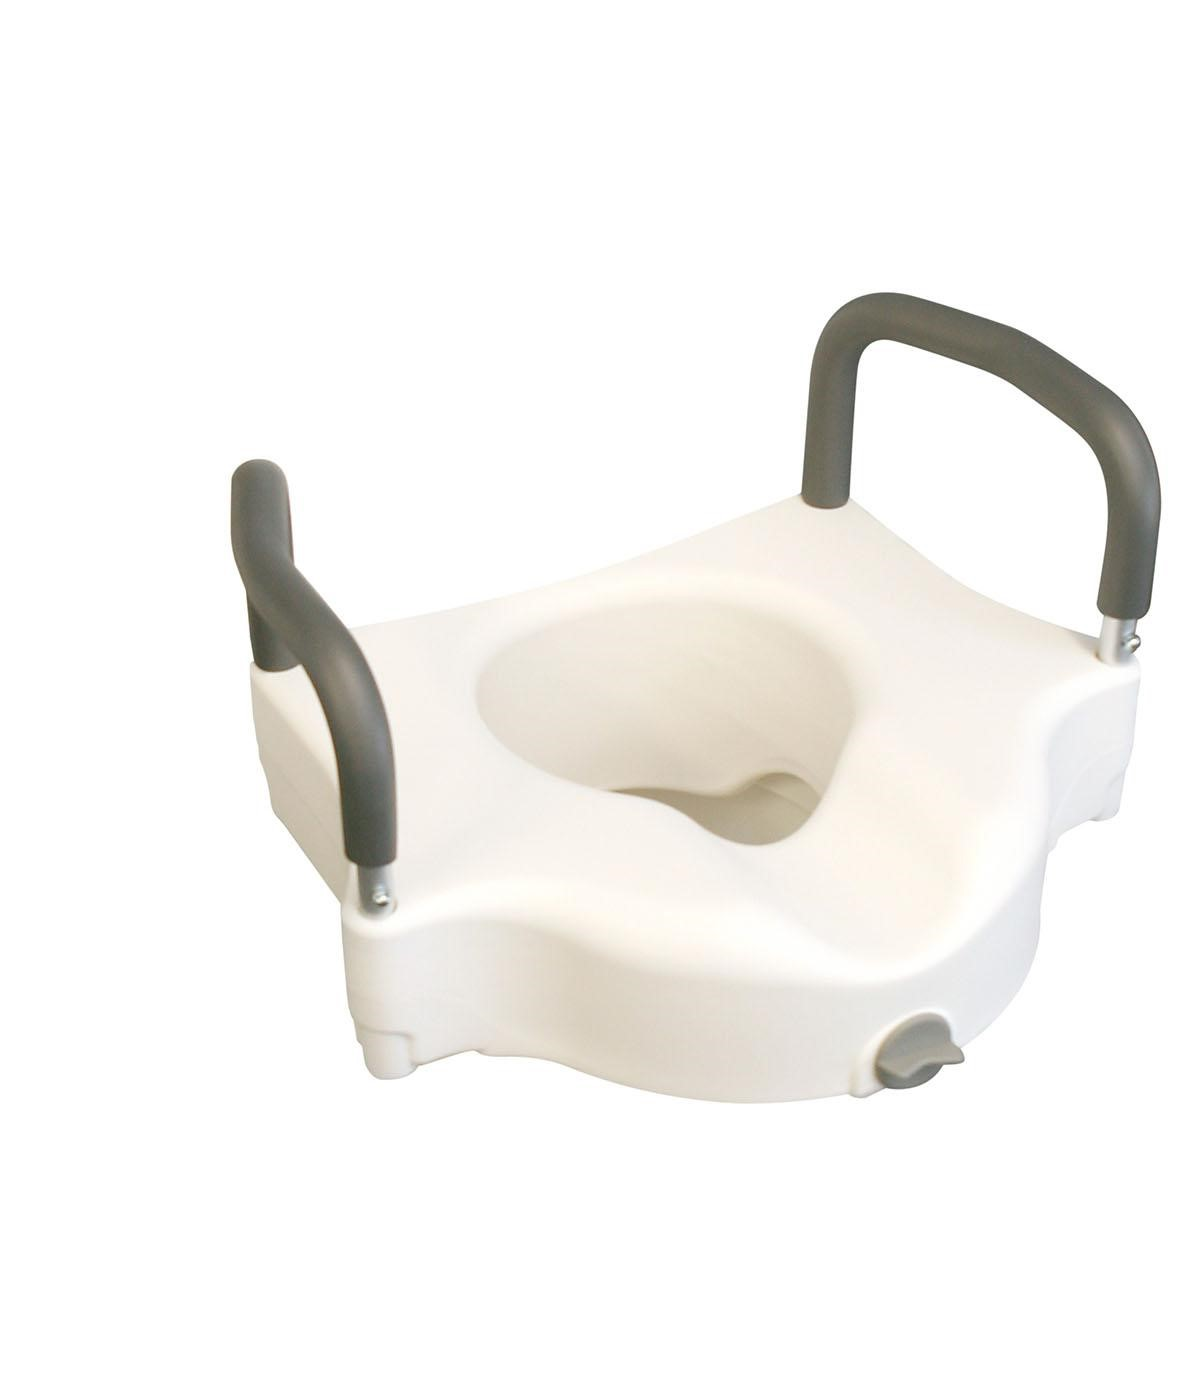 Medline Locking Elevated Toilet Seat with Arms New Microban Free Shipping